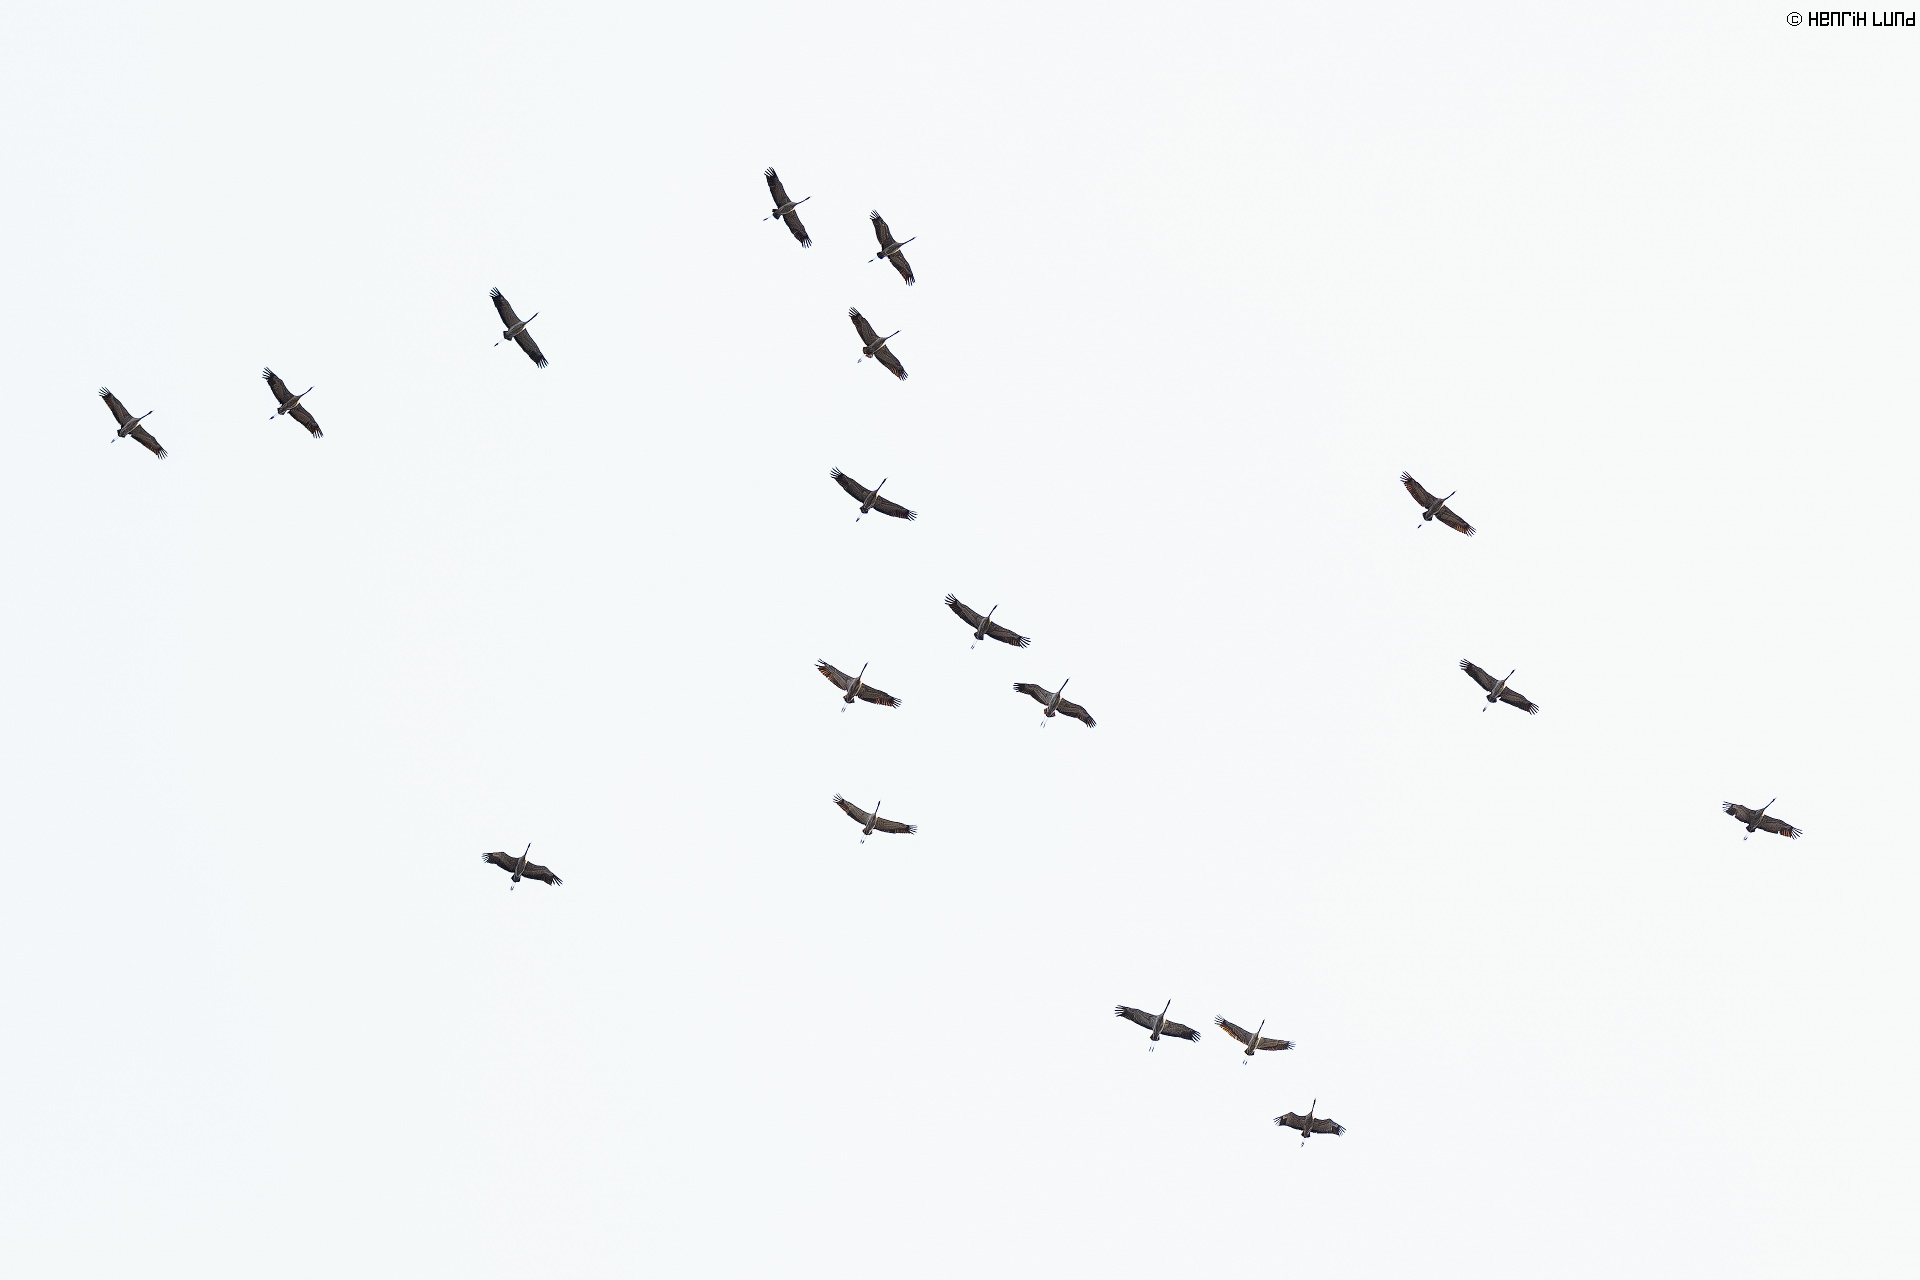 Common cranes circulating before landing in early april. Helsinki, Finland, April 2015.